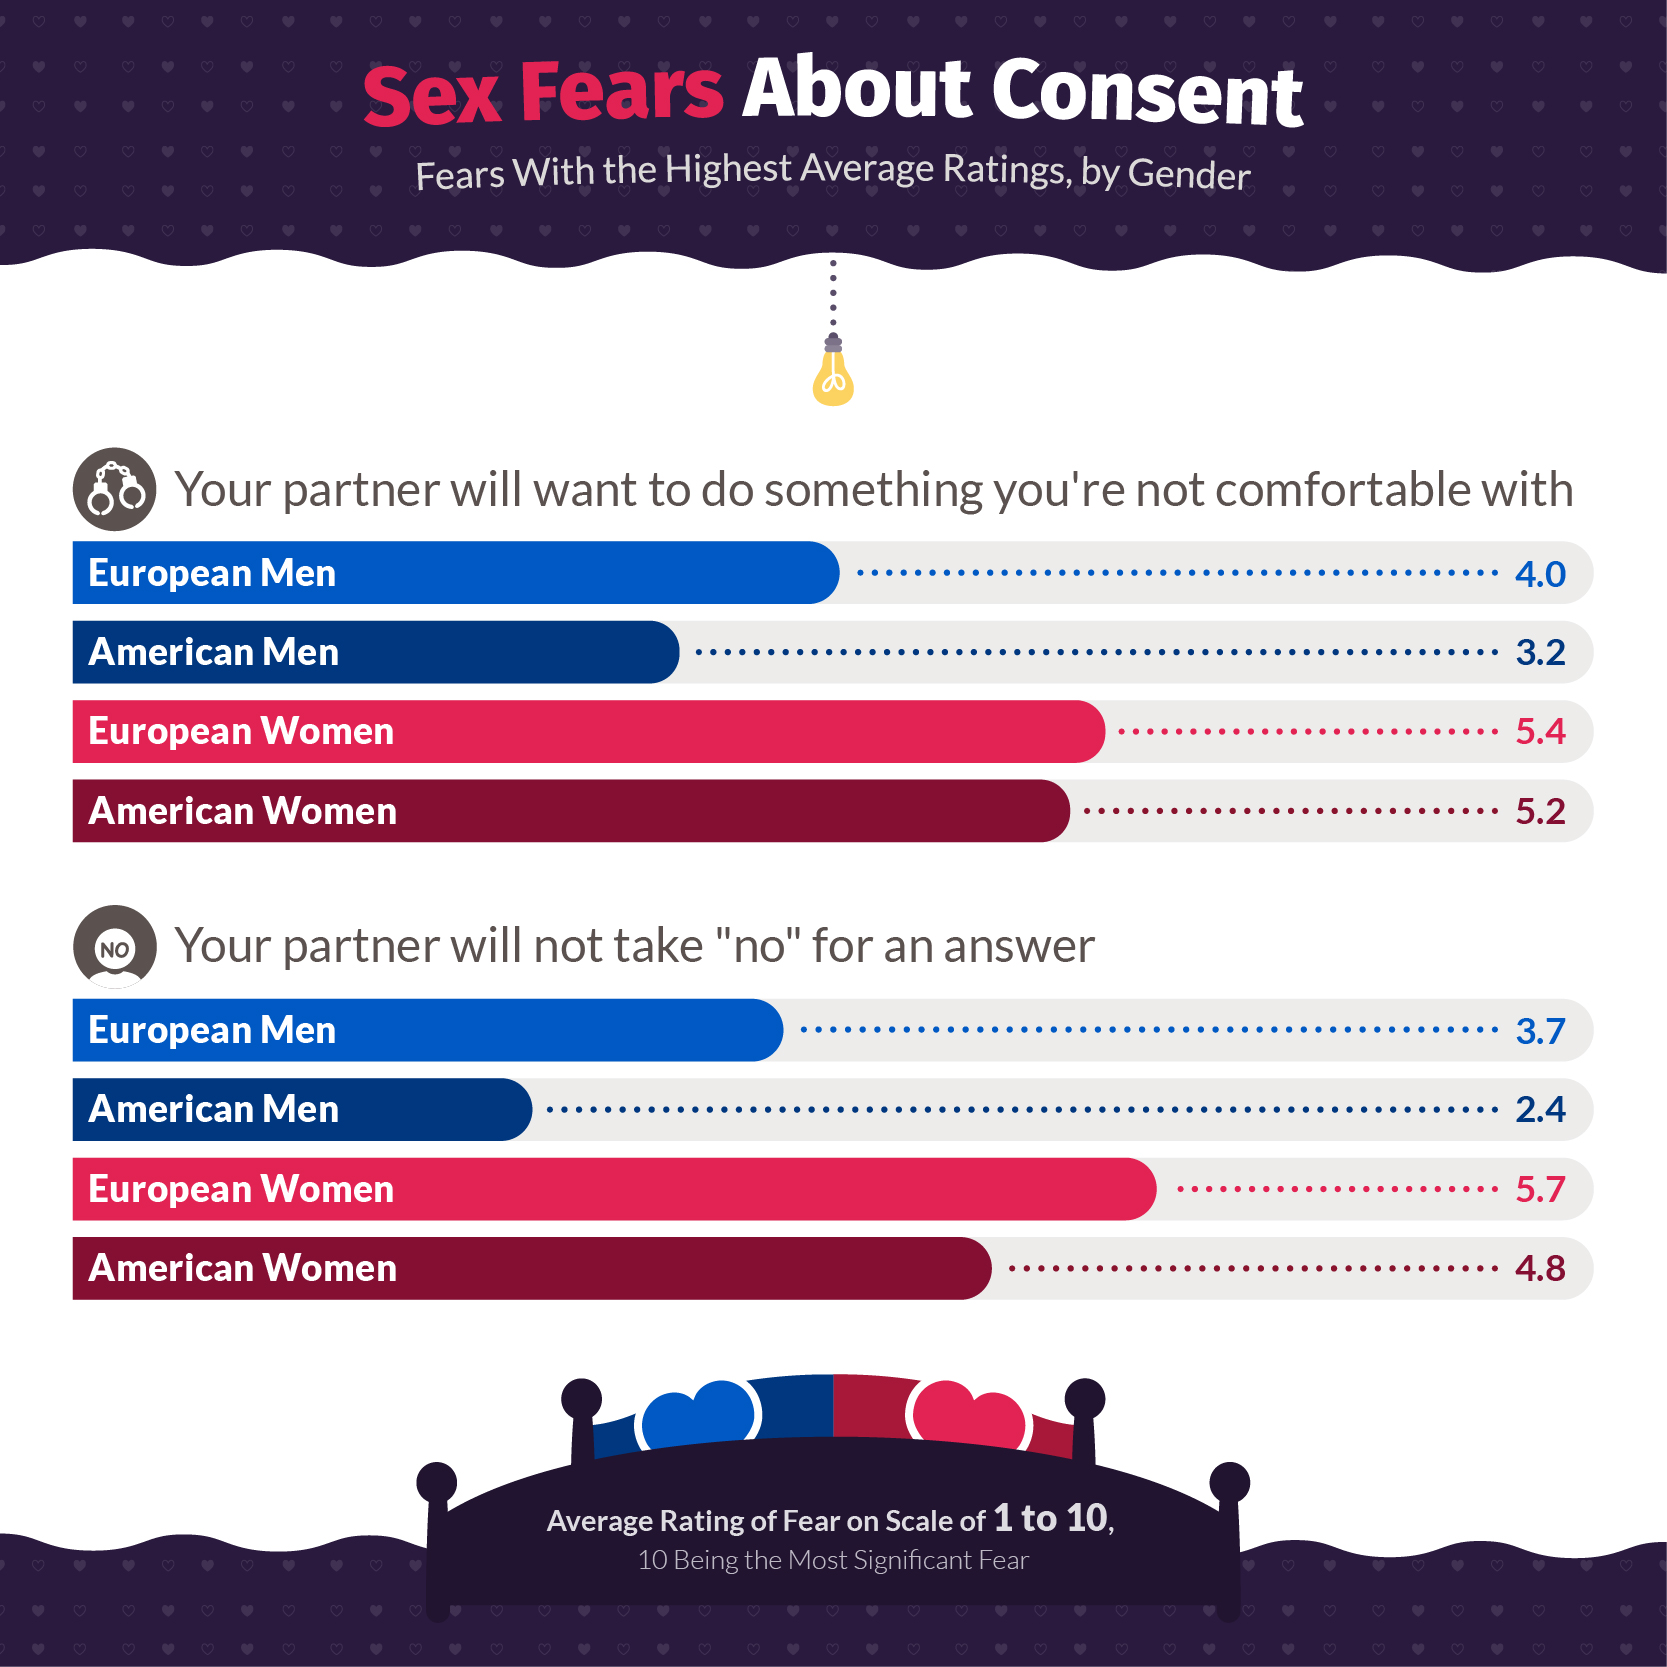 Sex Fears About Consent